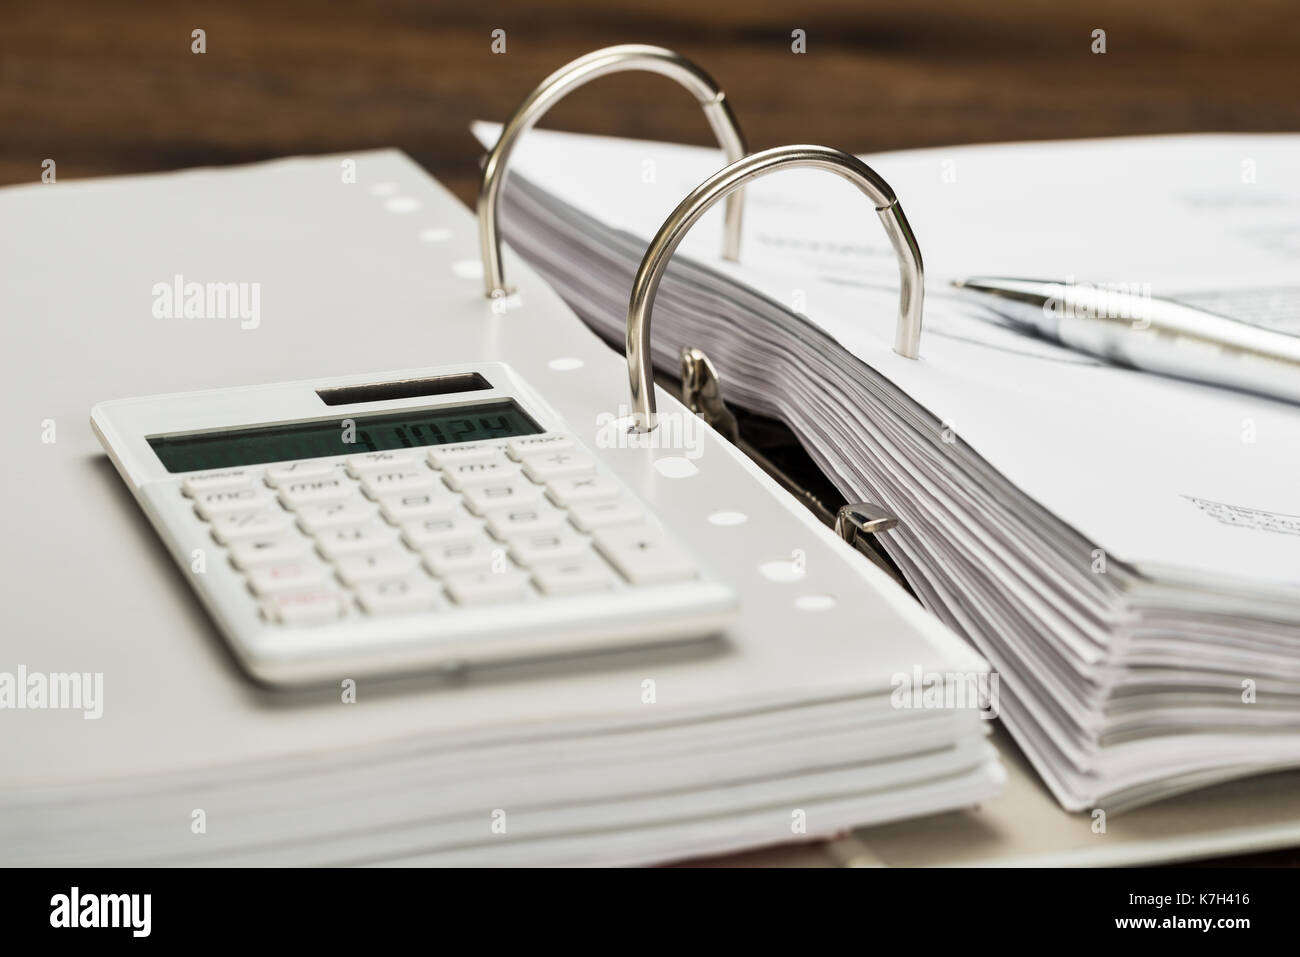 Close-up Of Invoice With Calculator And Pen On Desk Stock Photo